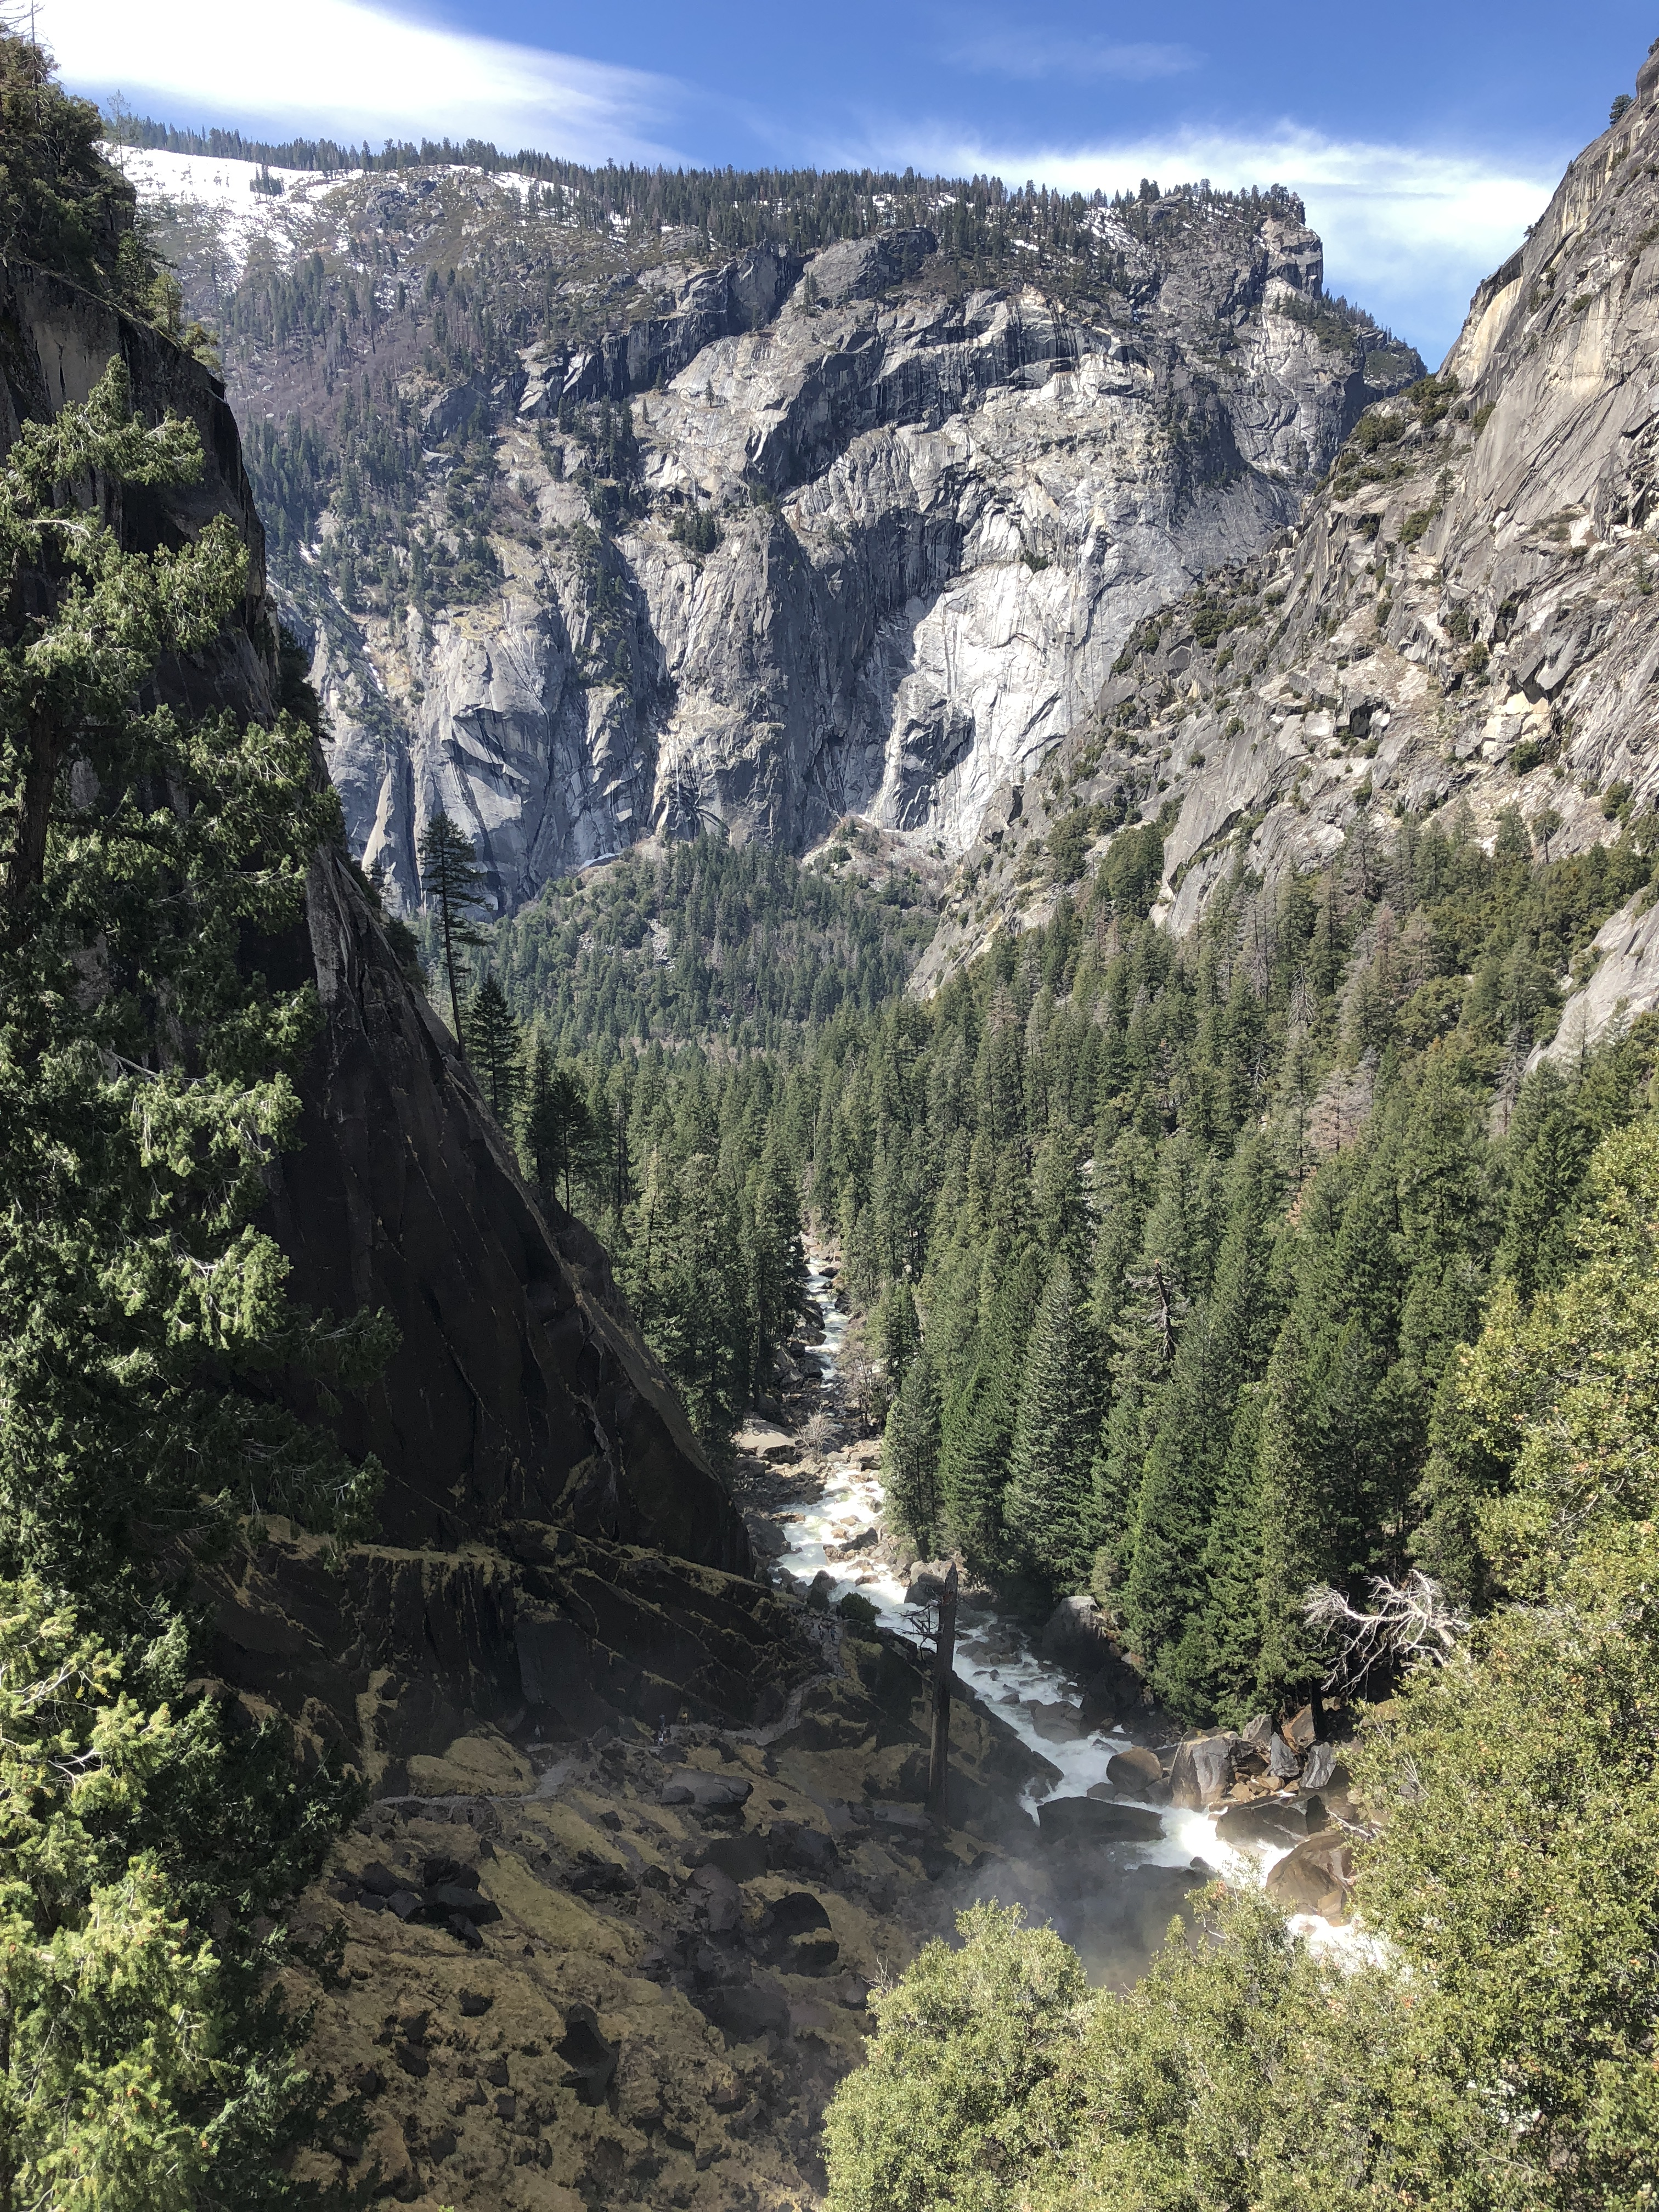 looking back on the Mist Trail in Yosemite National Park